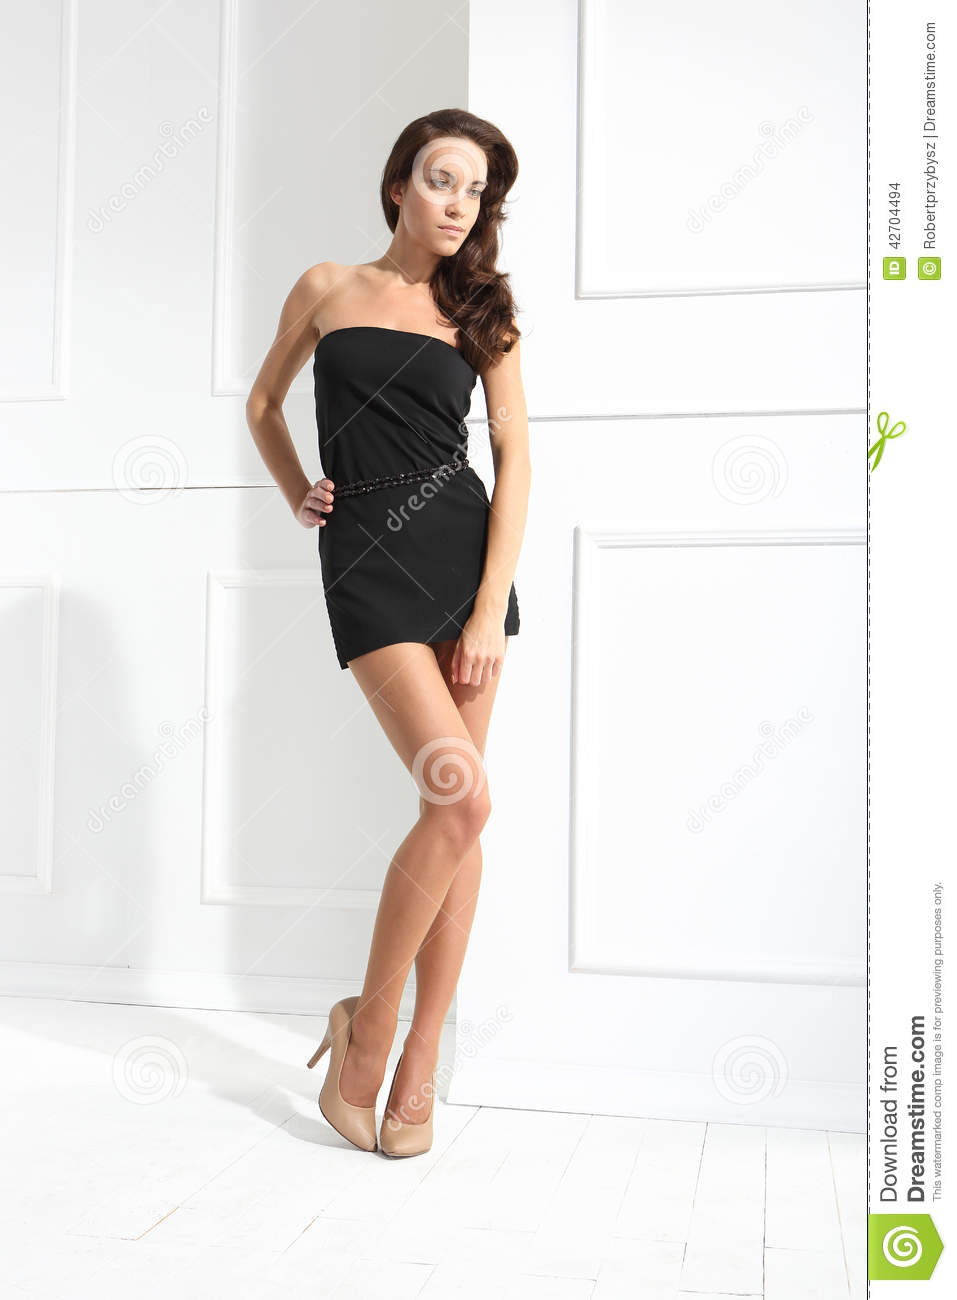 Confirm. Latina high heels and stockings think